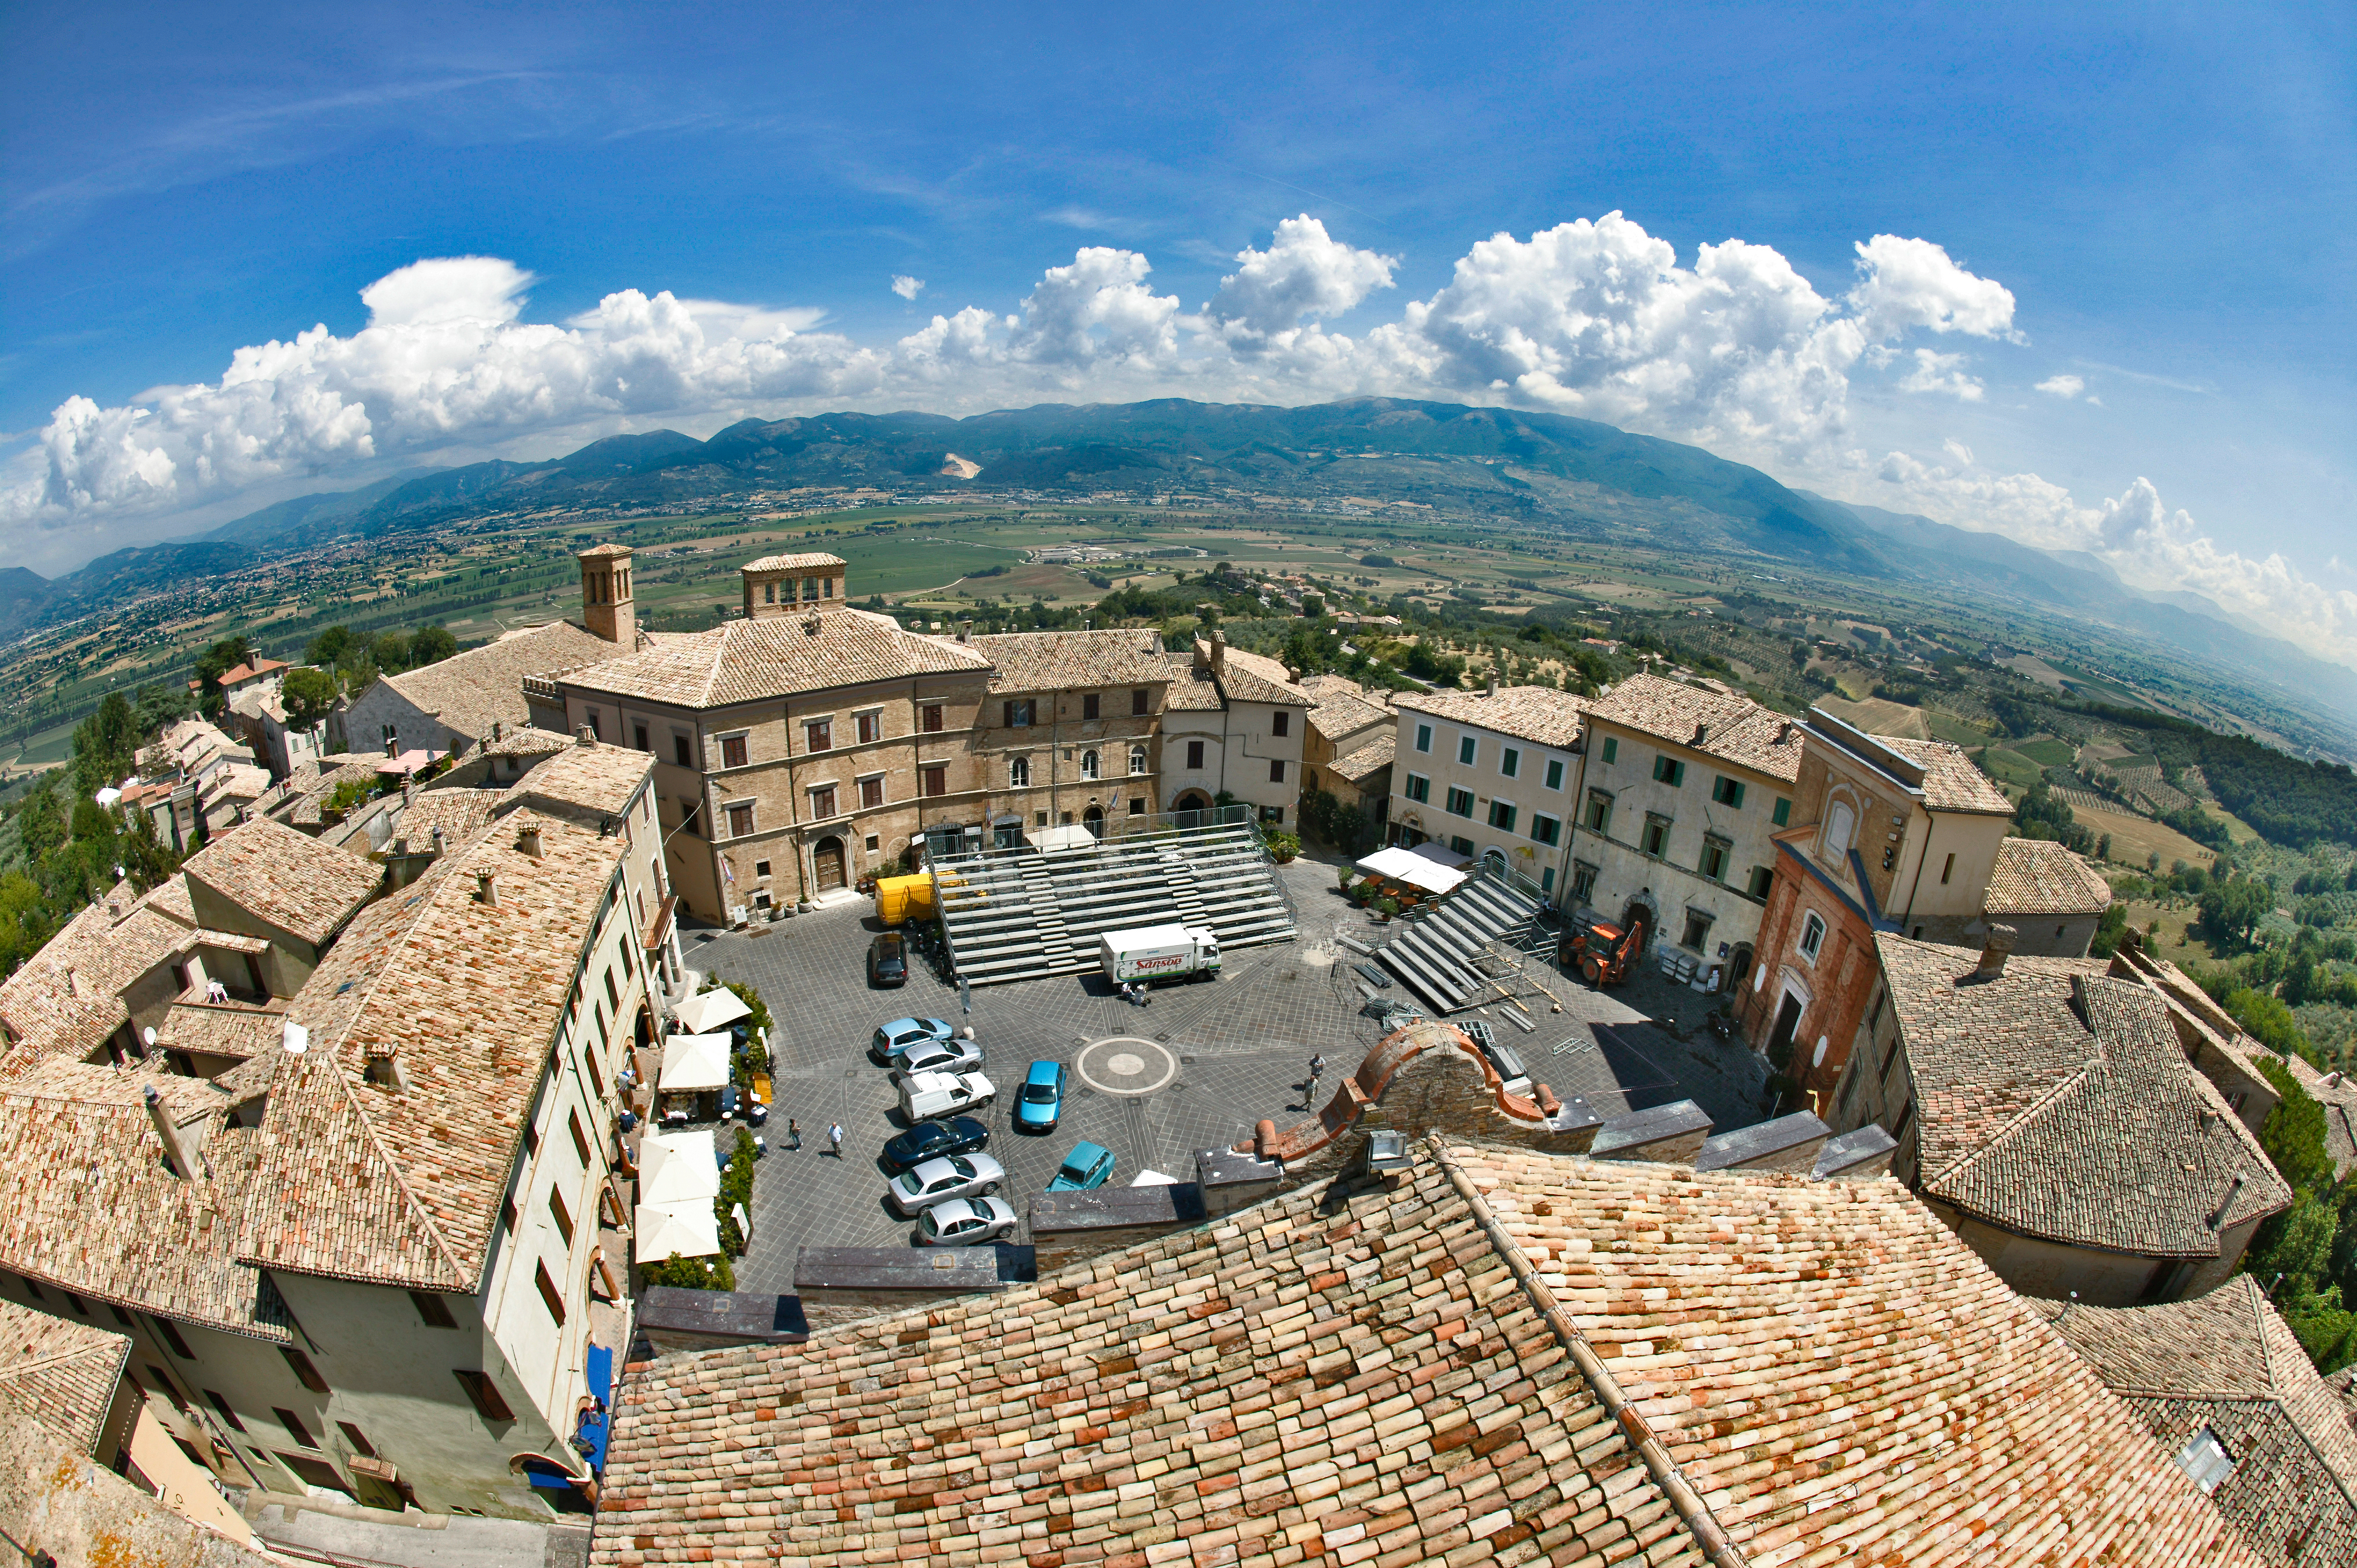 Montefalco: the round square of the little town. In the background, the Umbria Valley.